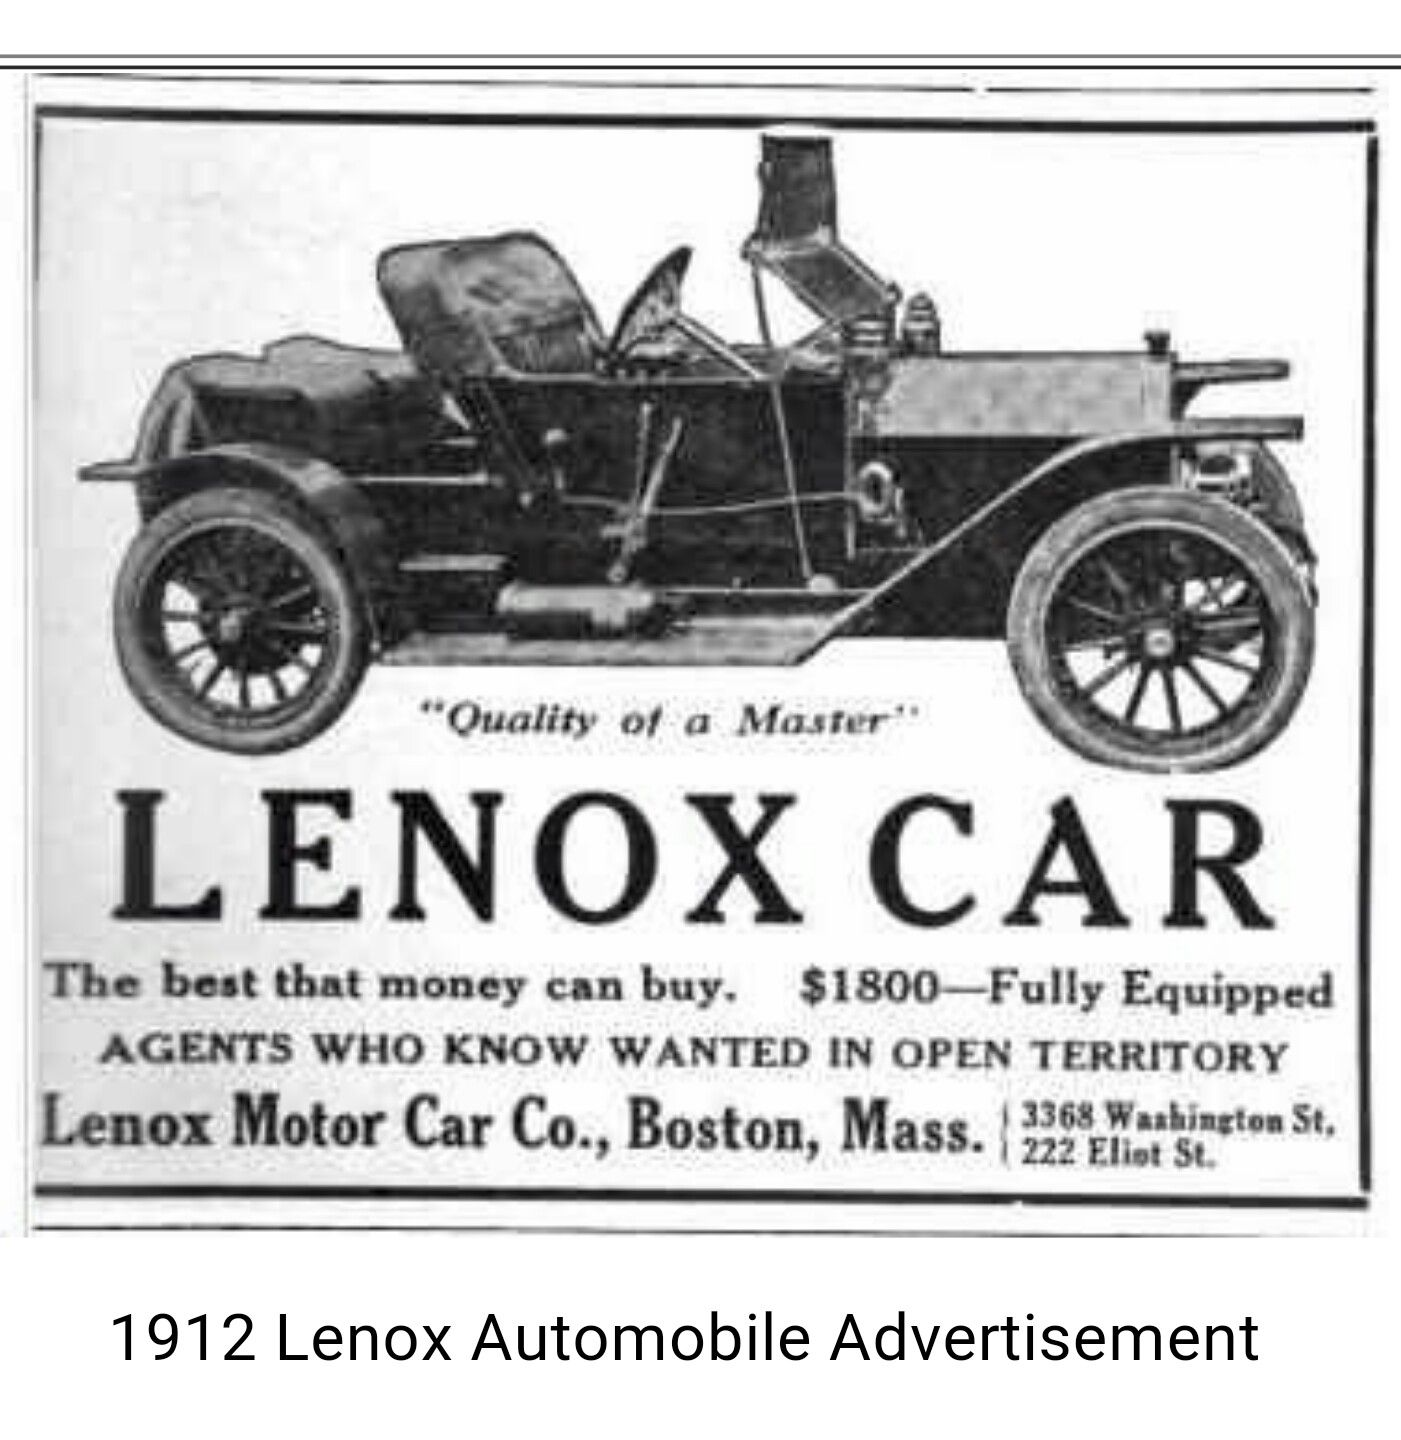 1912 Lennox   Marques (Autos and Trucks) Gone By   Pinterest   Cars ...